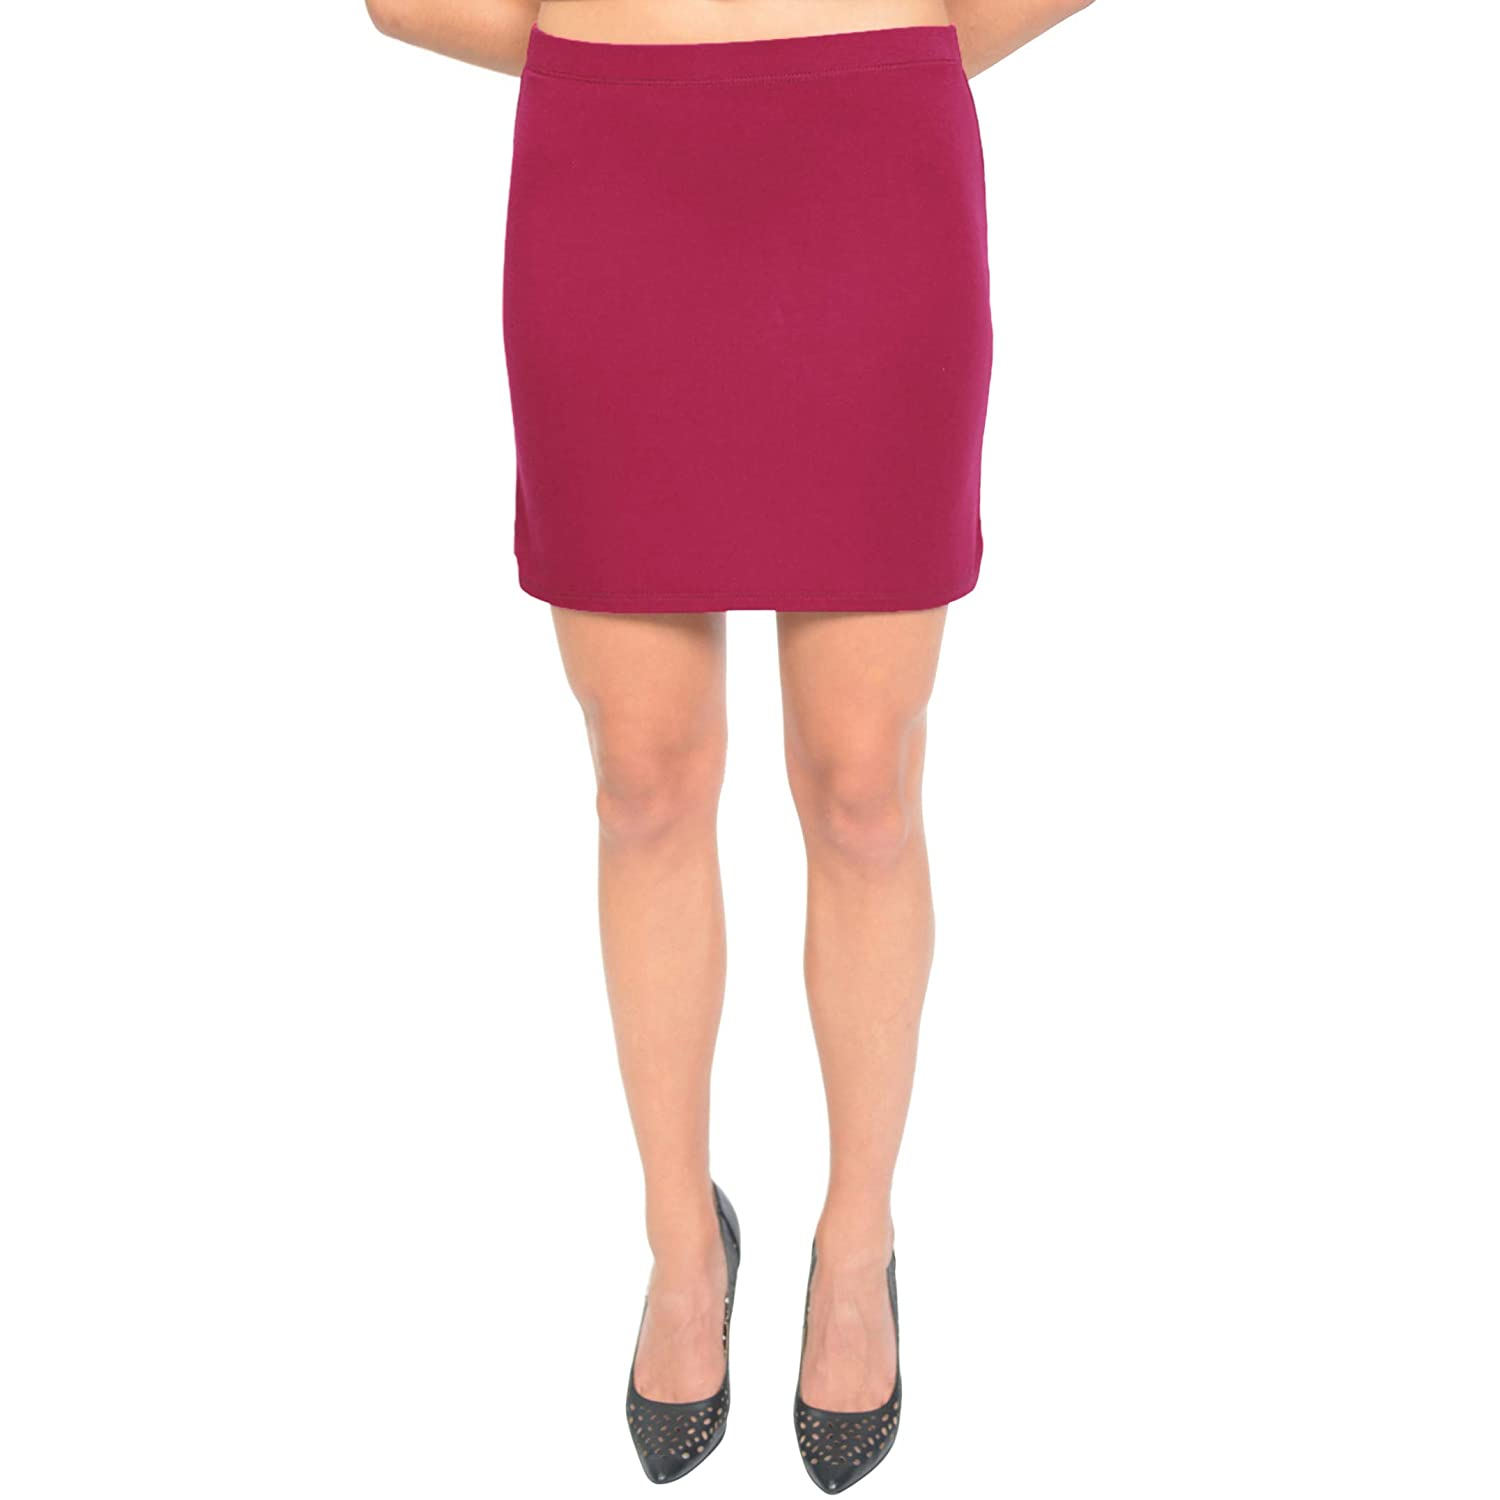 117ce7fa42a99 Stretch is Comfort Women's Soft Stretch Fabric Basic Mini Skirt at Amazon  Women's Clothing store: